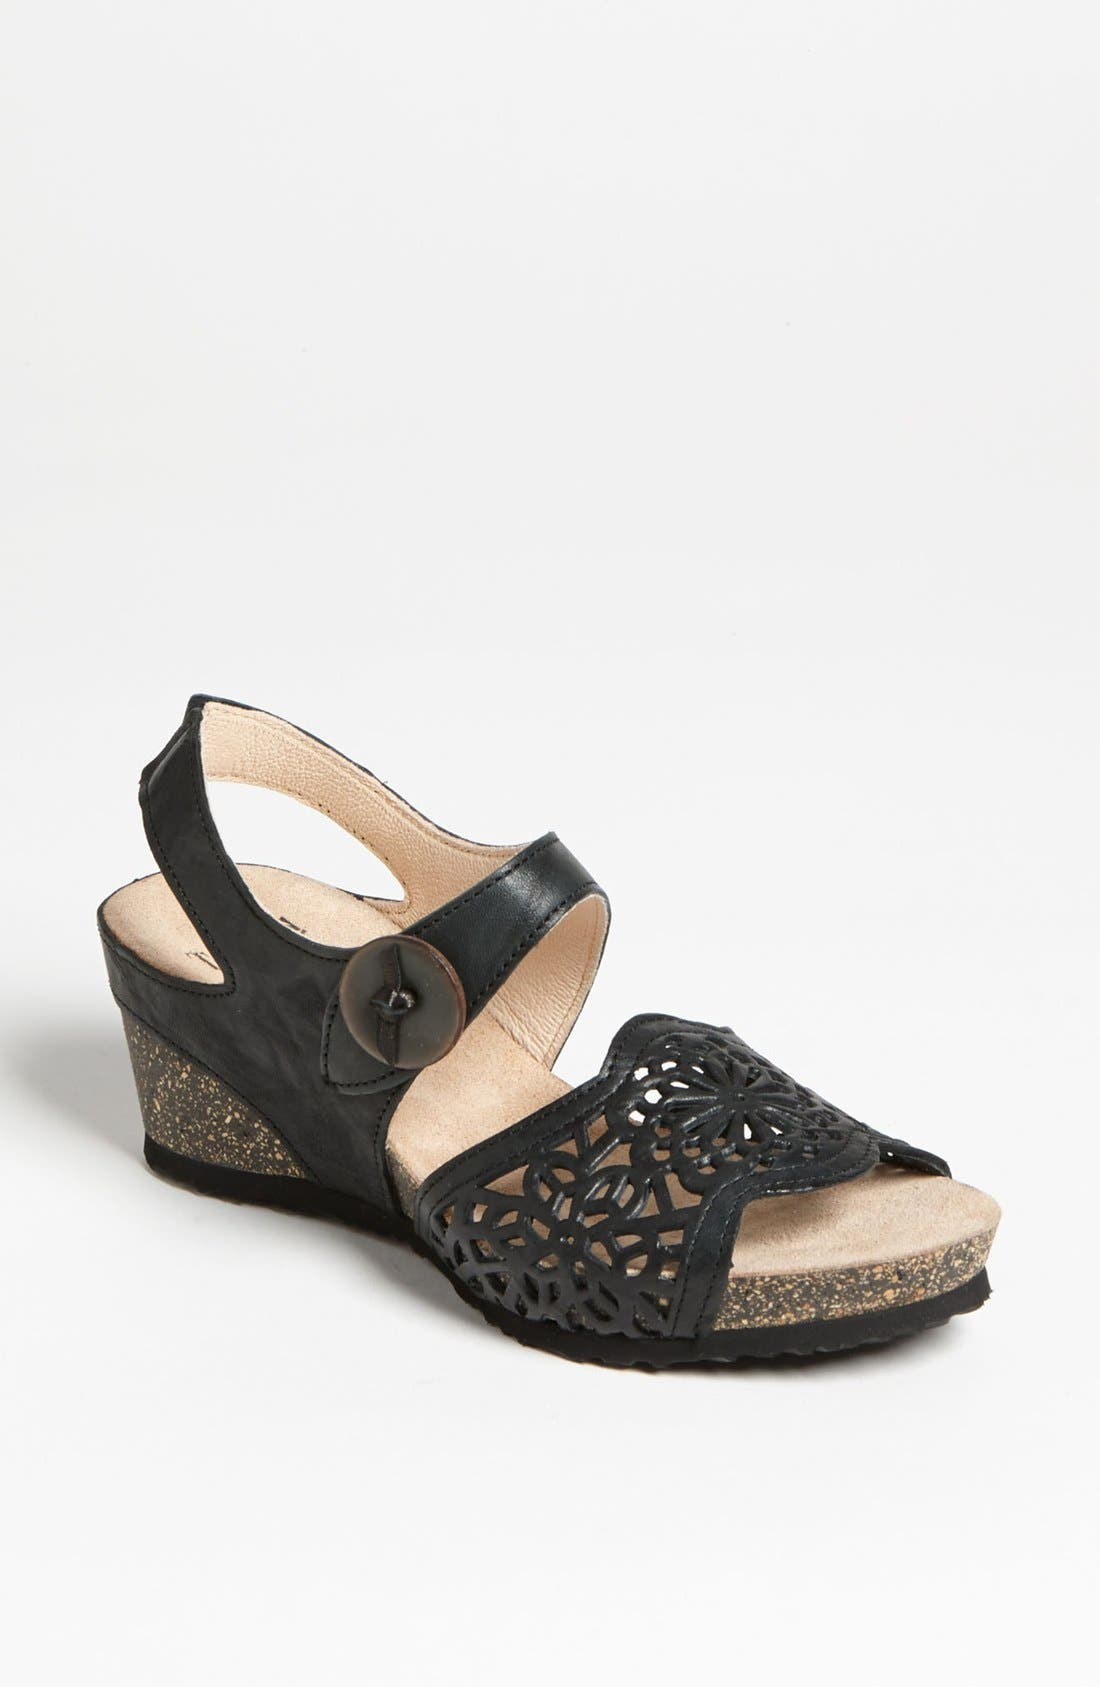 Alternate Image 1 Selected - Think! 'Zili 2' Sandal